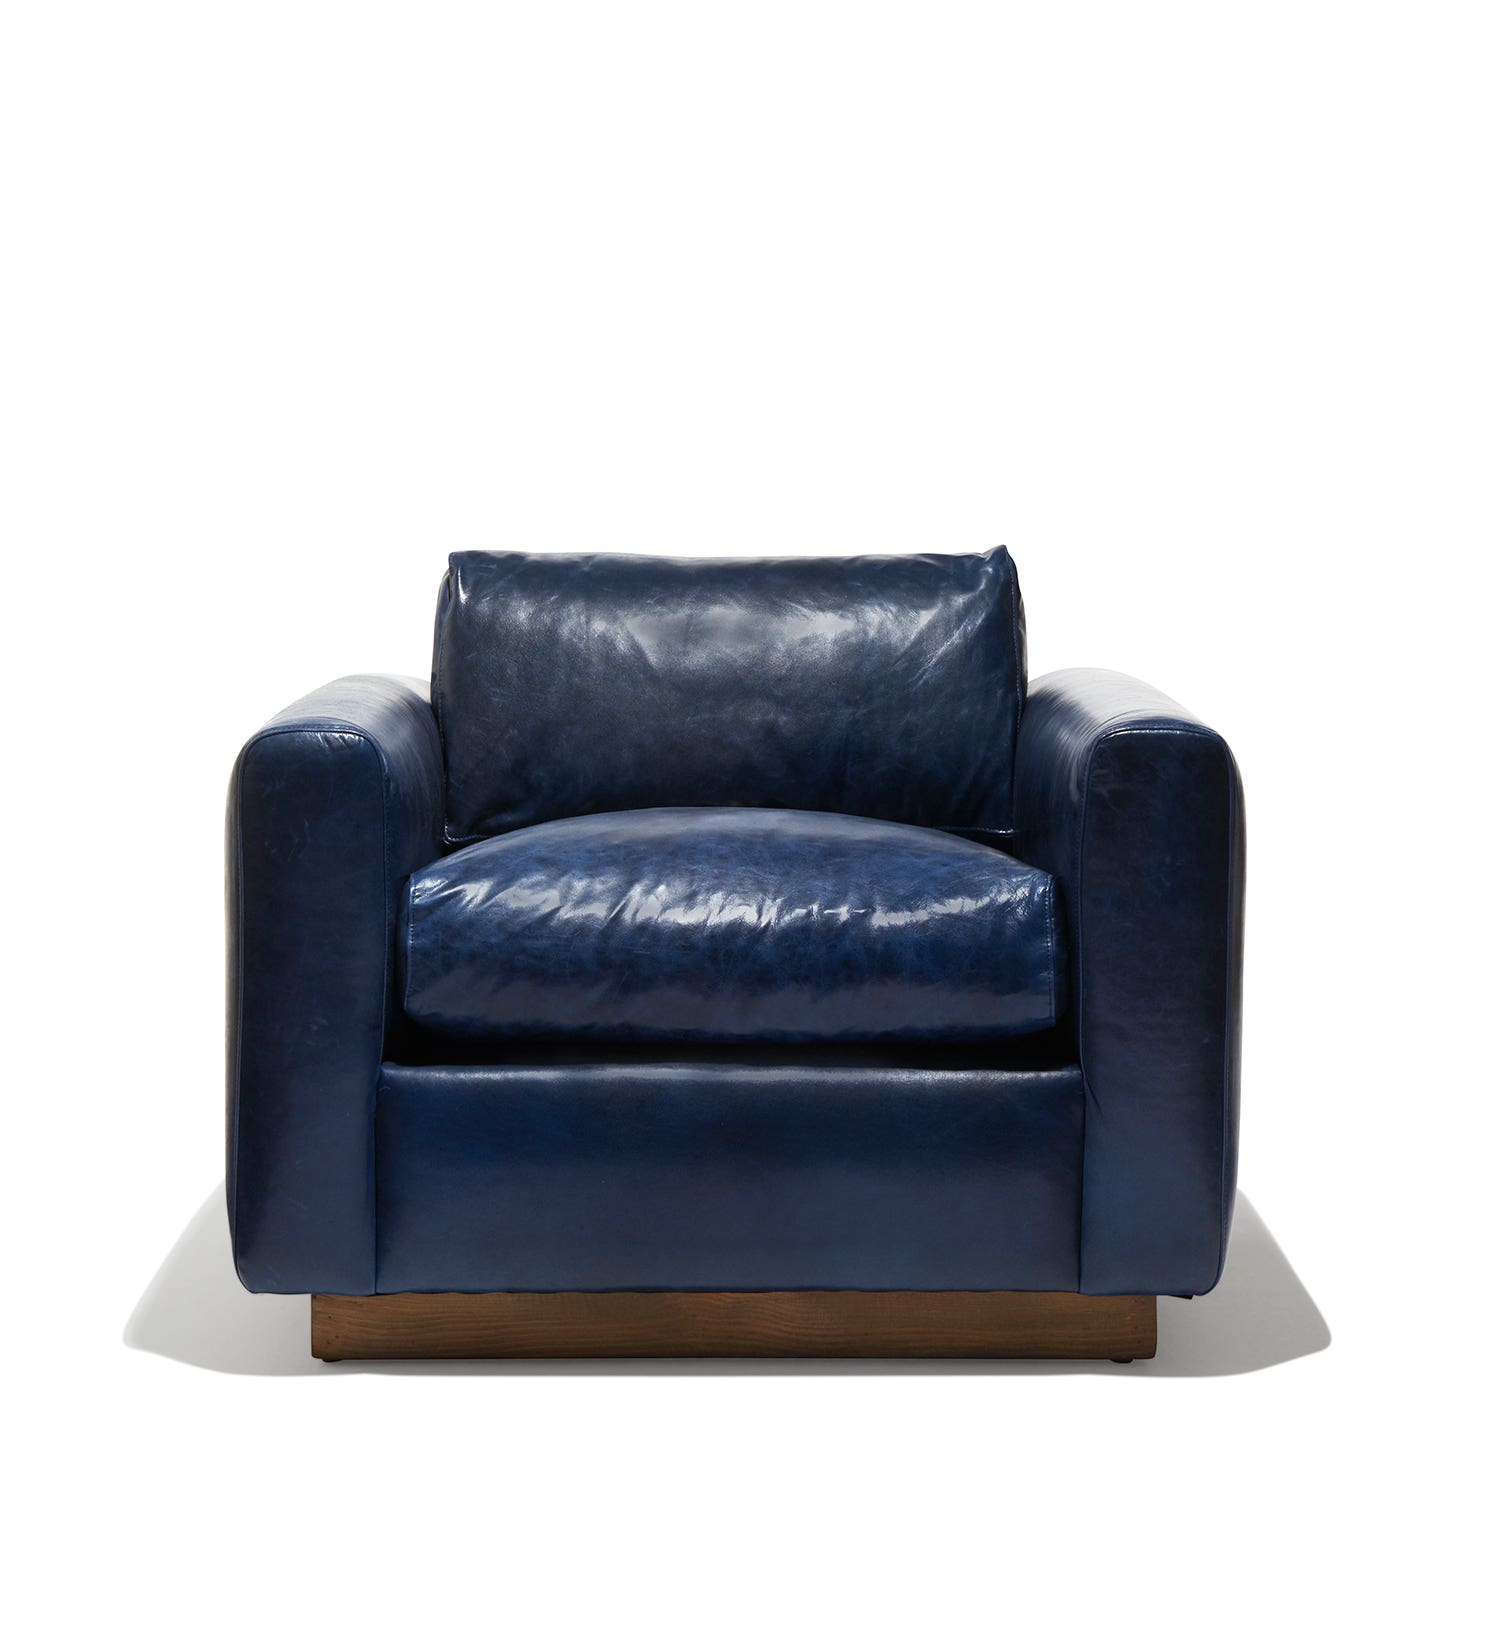 Mulholland Chair Leather